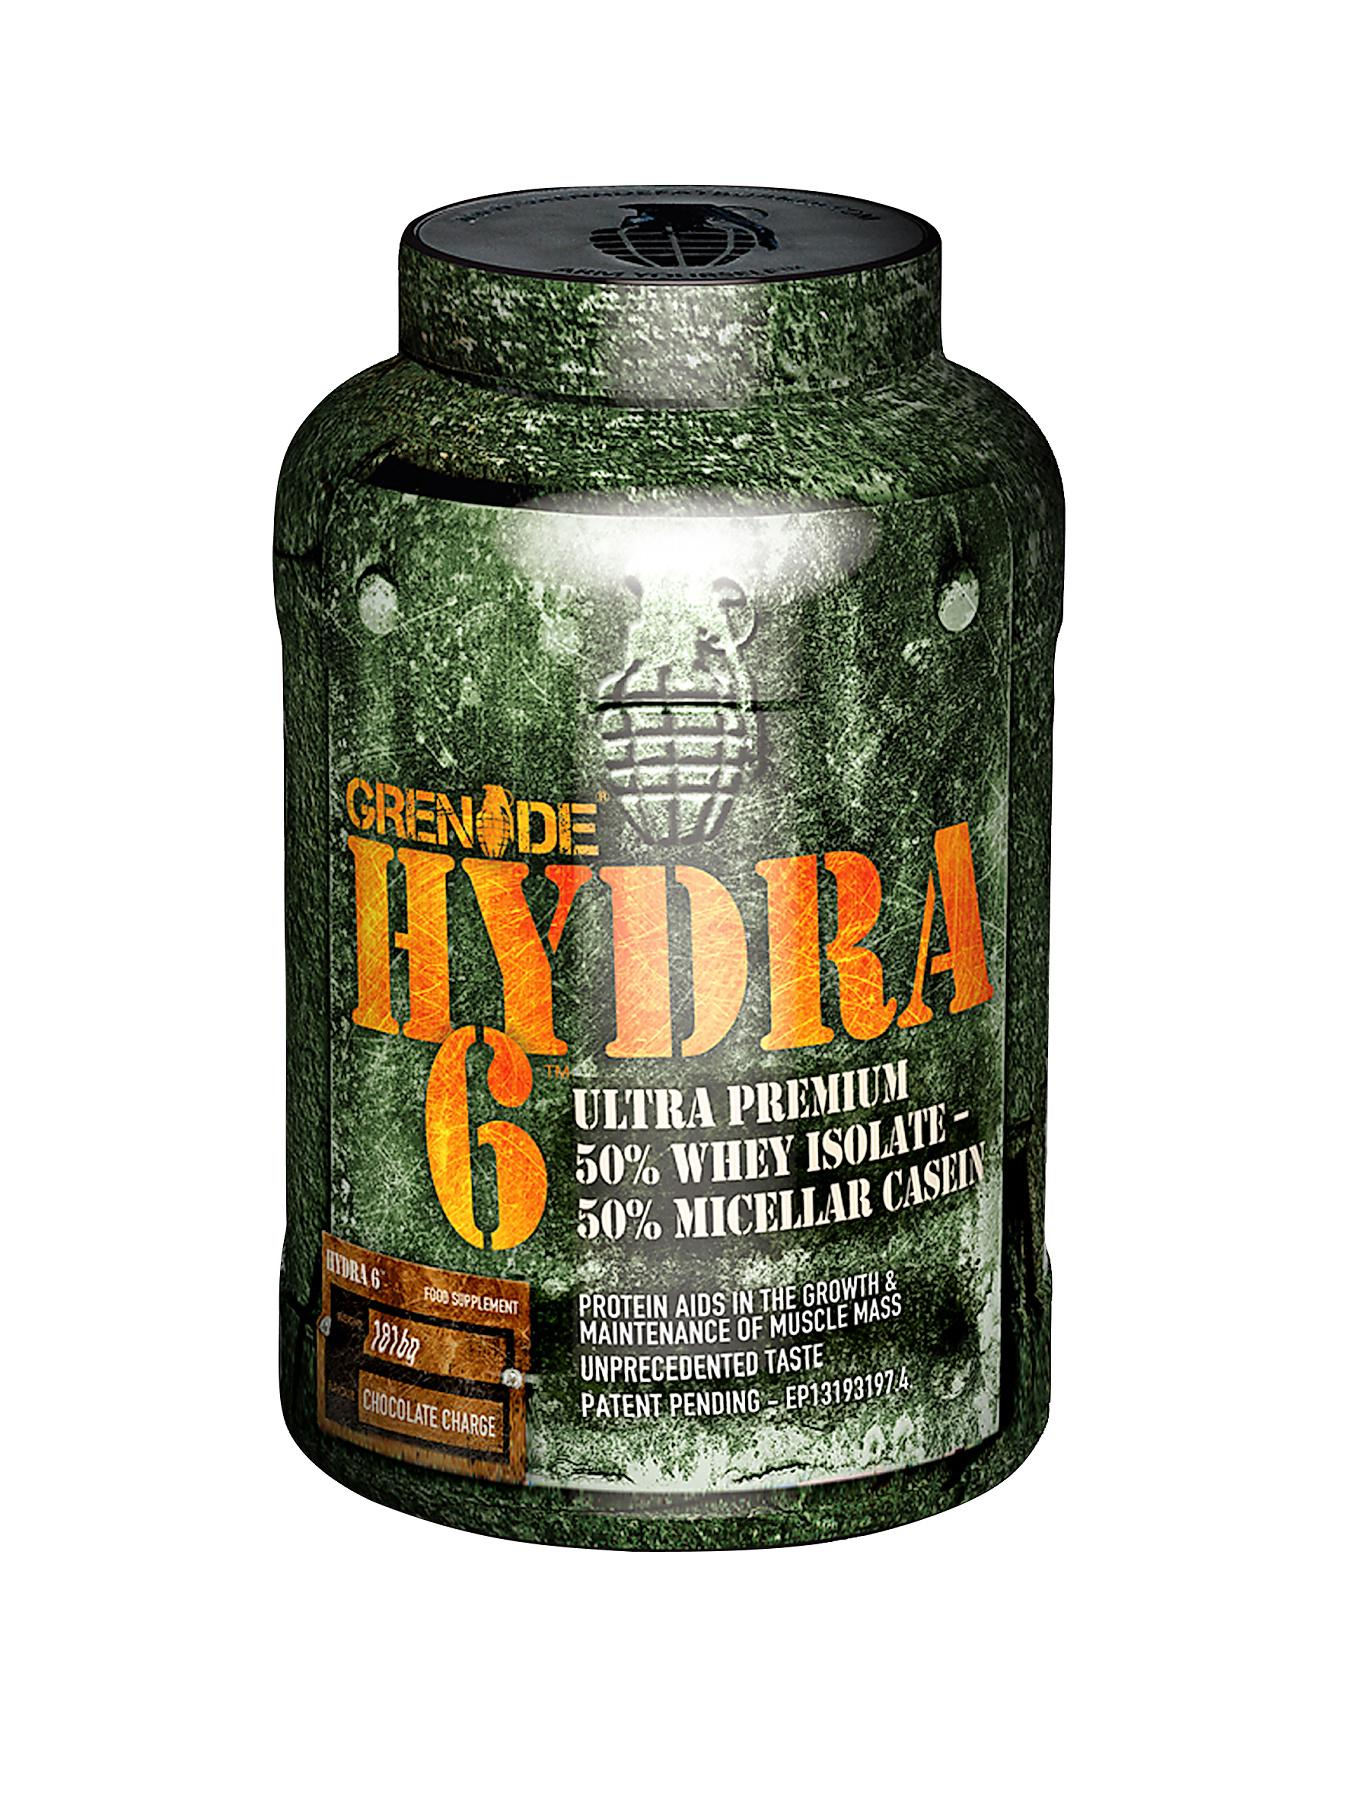 GRENADE Hydra Protein Powder 1.8kg Chocolate Charge